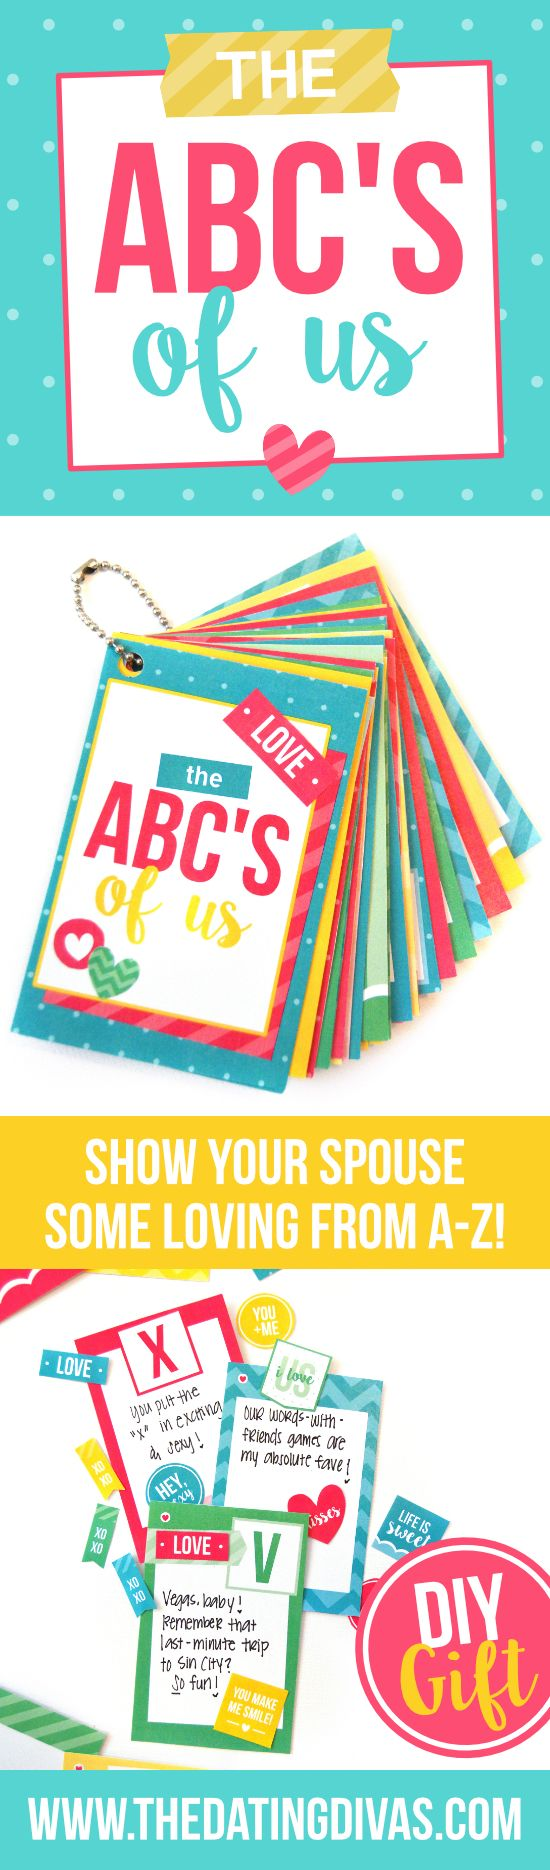 ABC's of Us DIY, Romantic Gift Idea- perfect for an anniversary gift, birthday present, V-day gift, etc.